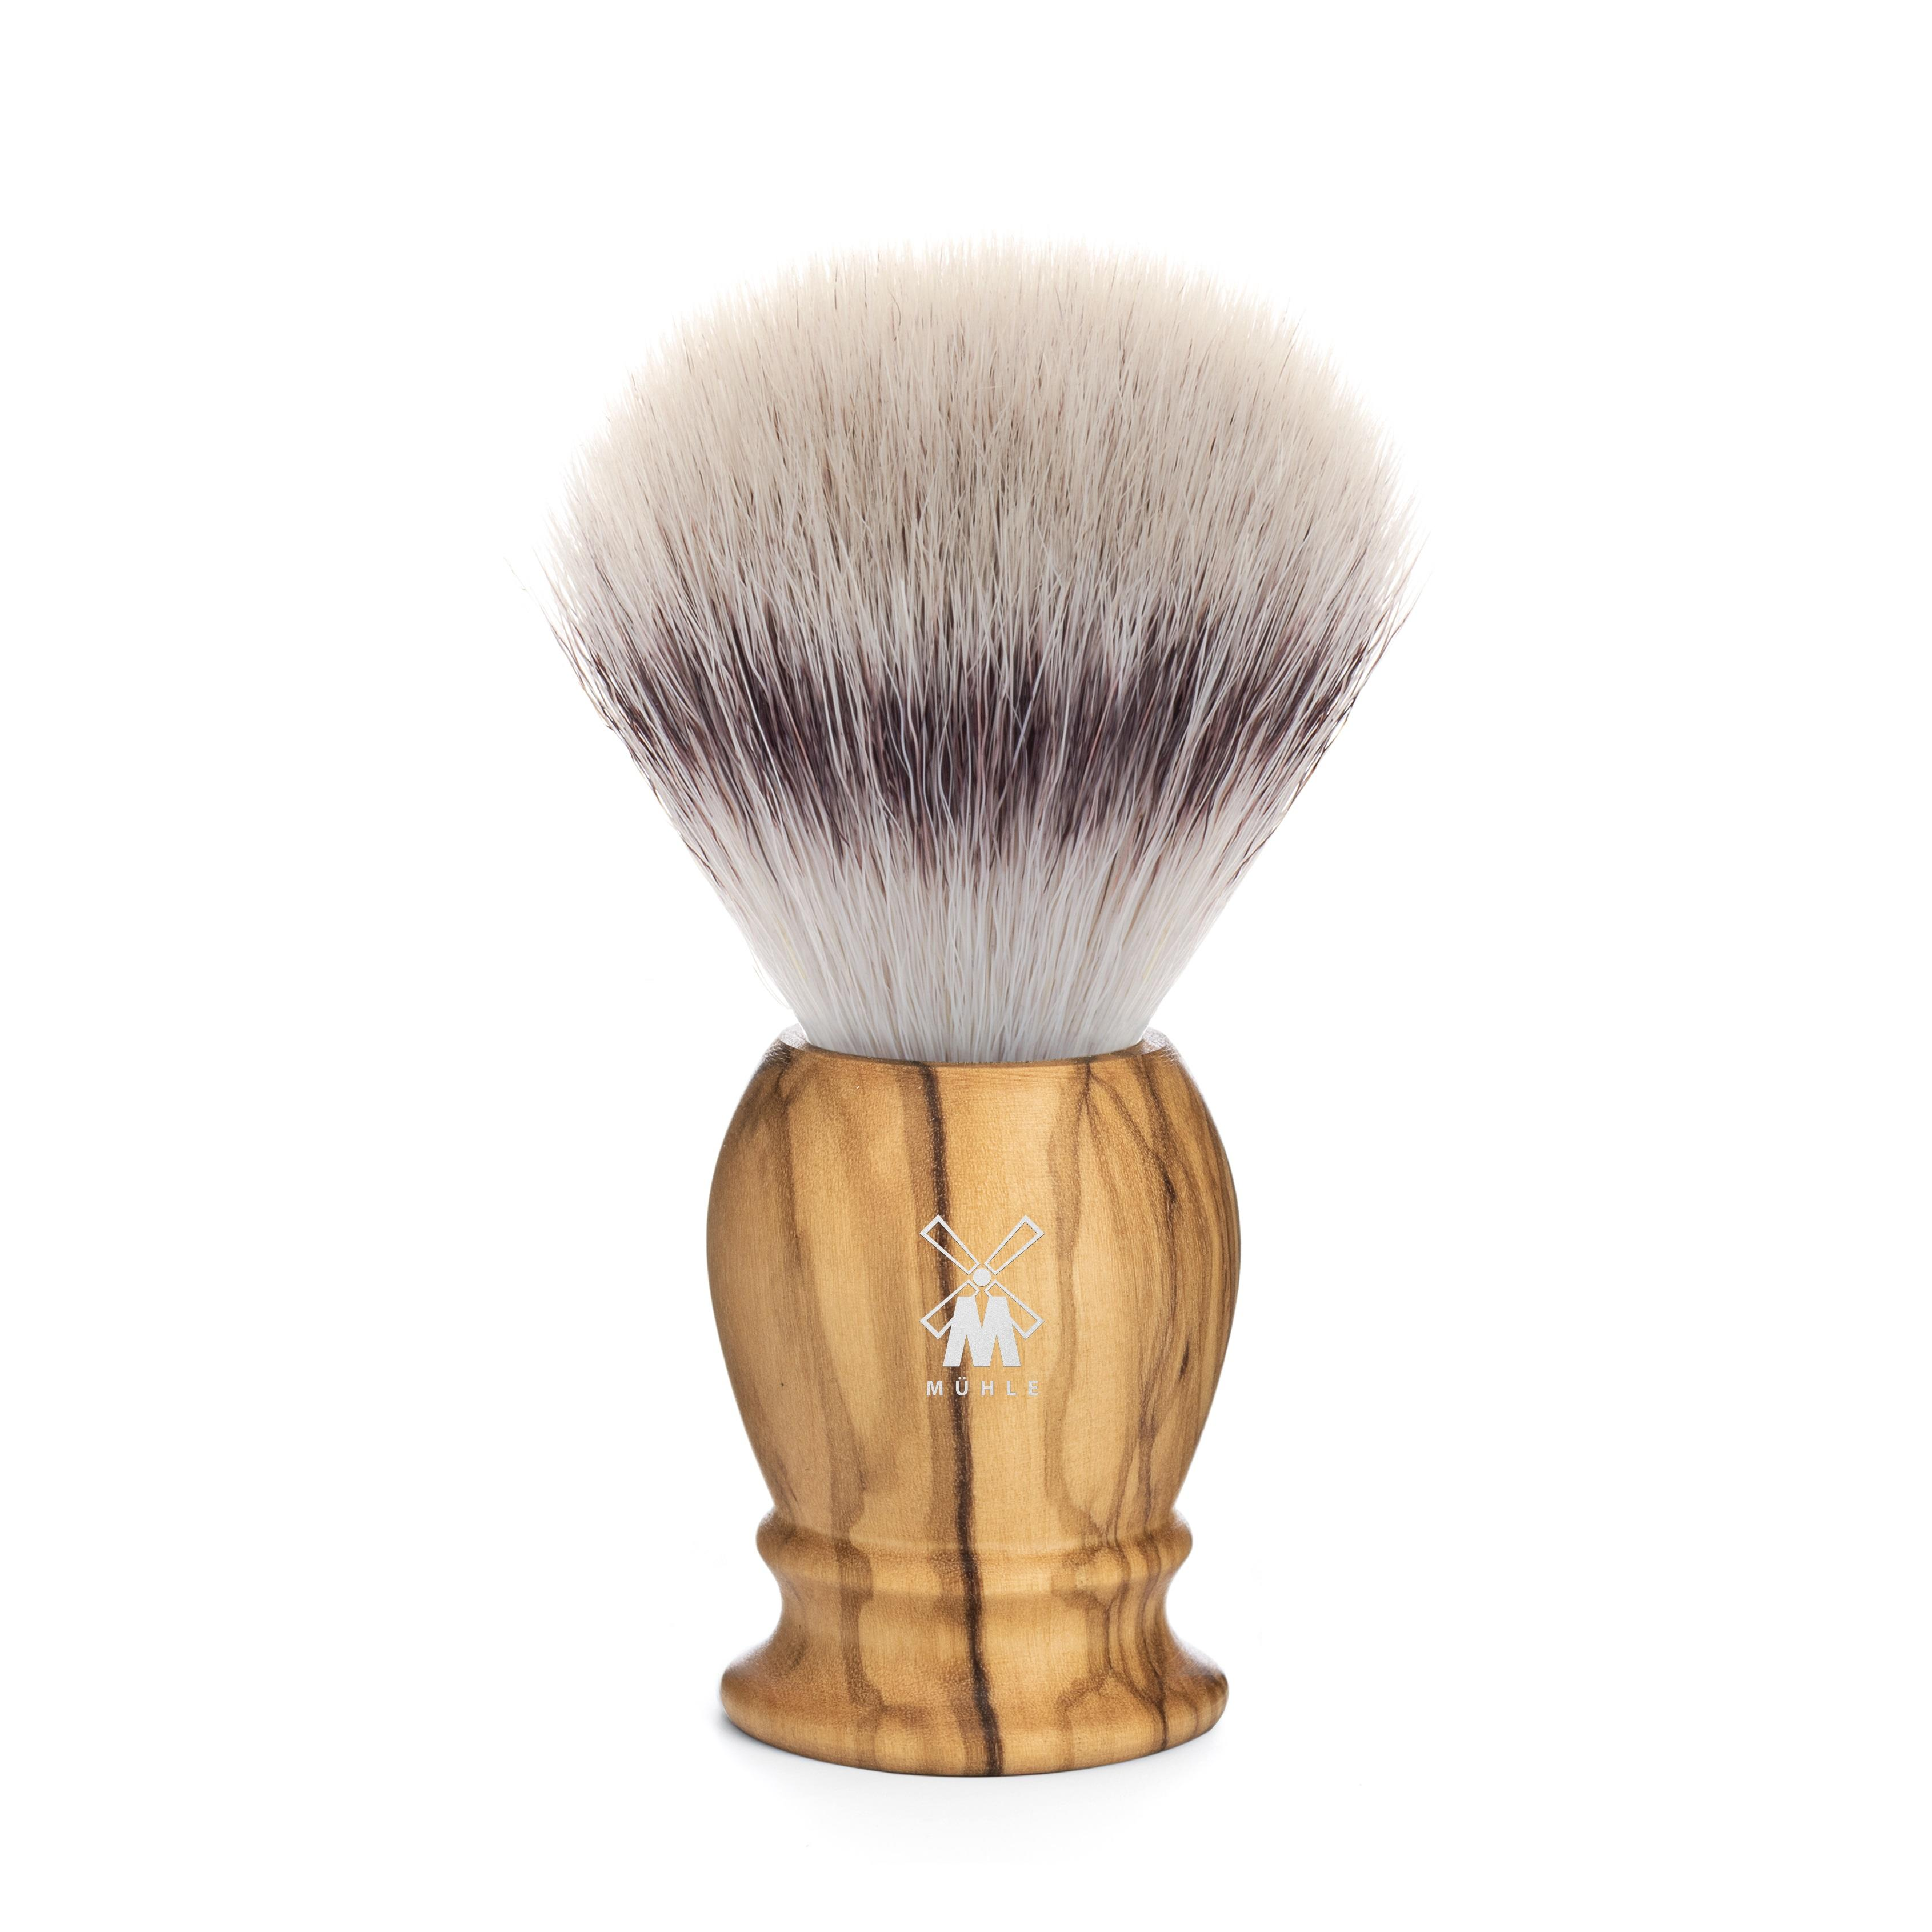 MÜHLE CLASSIC Olivewood brush in Silvertip Fibre.